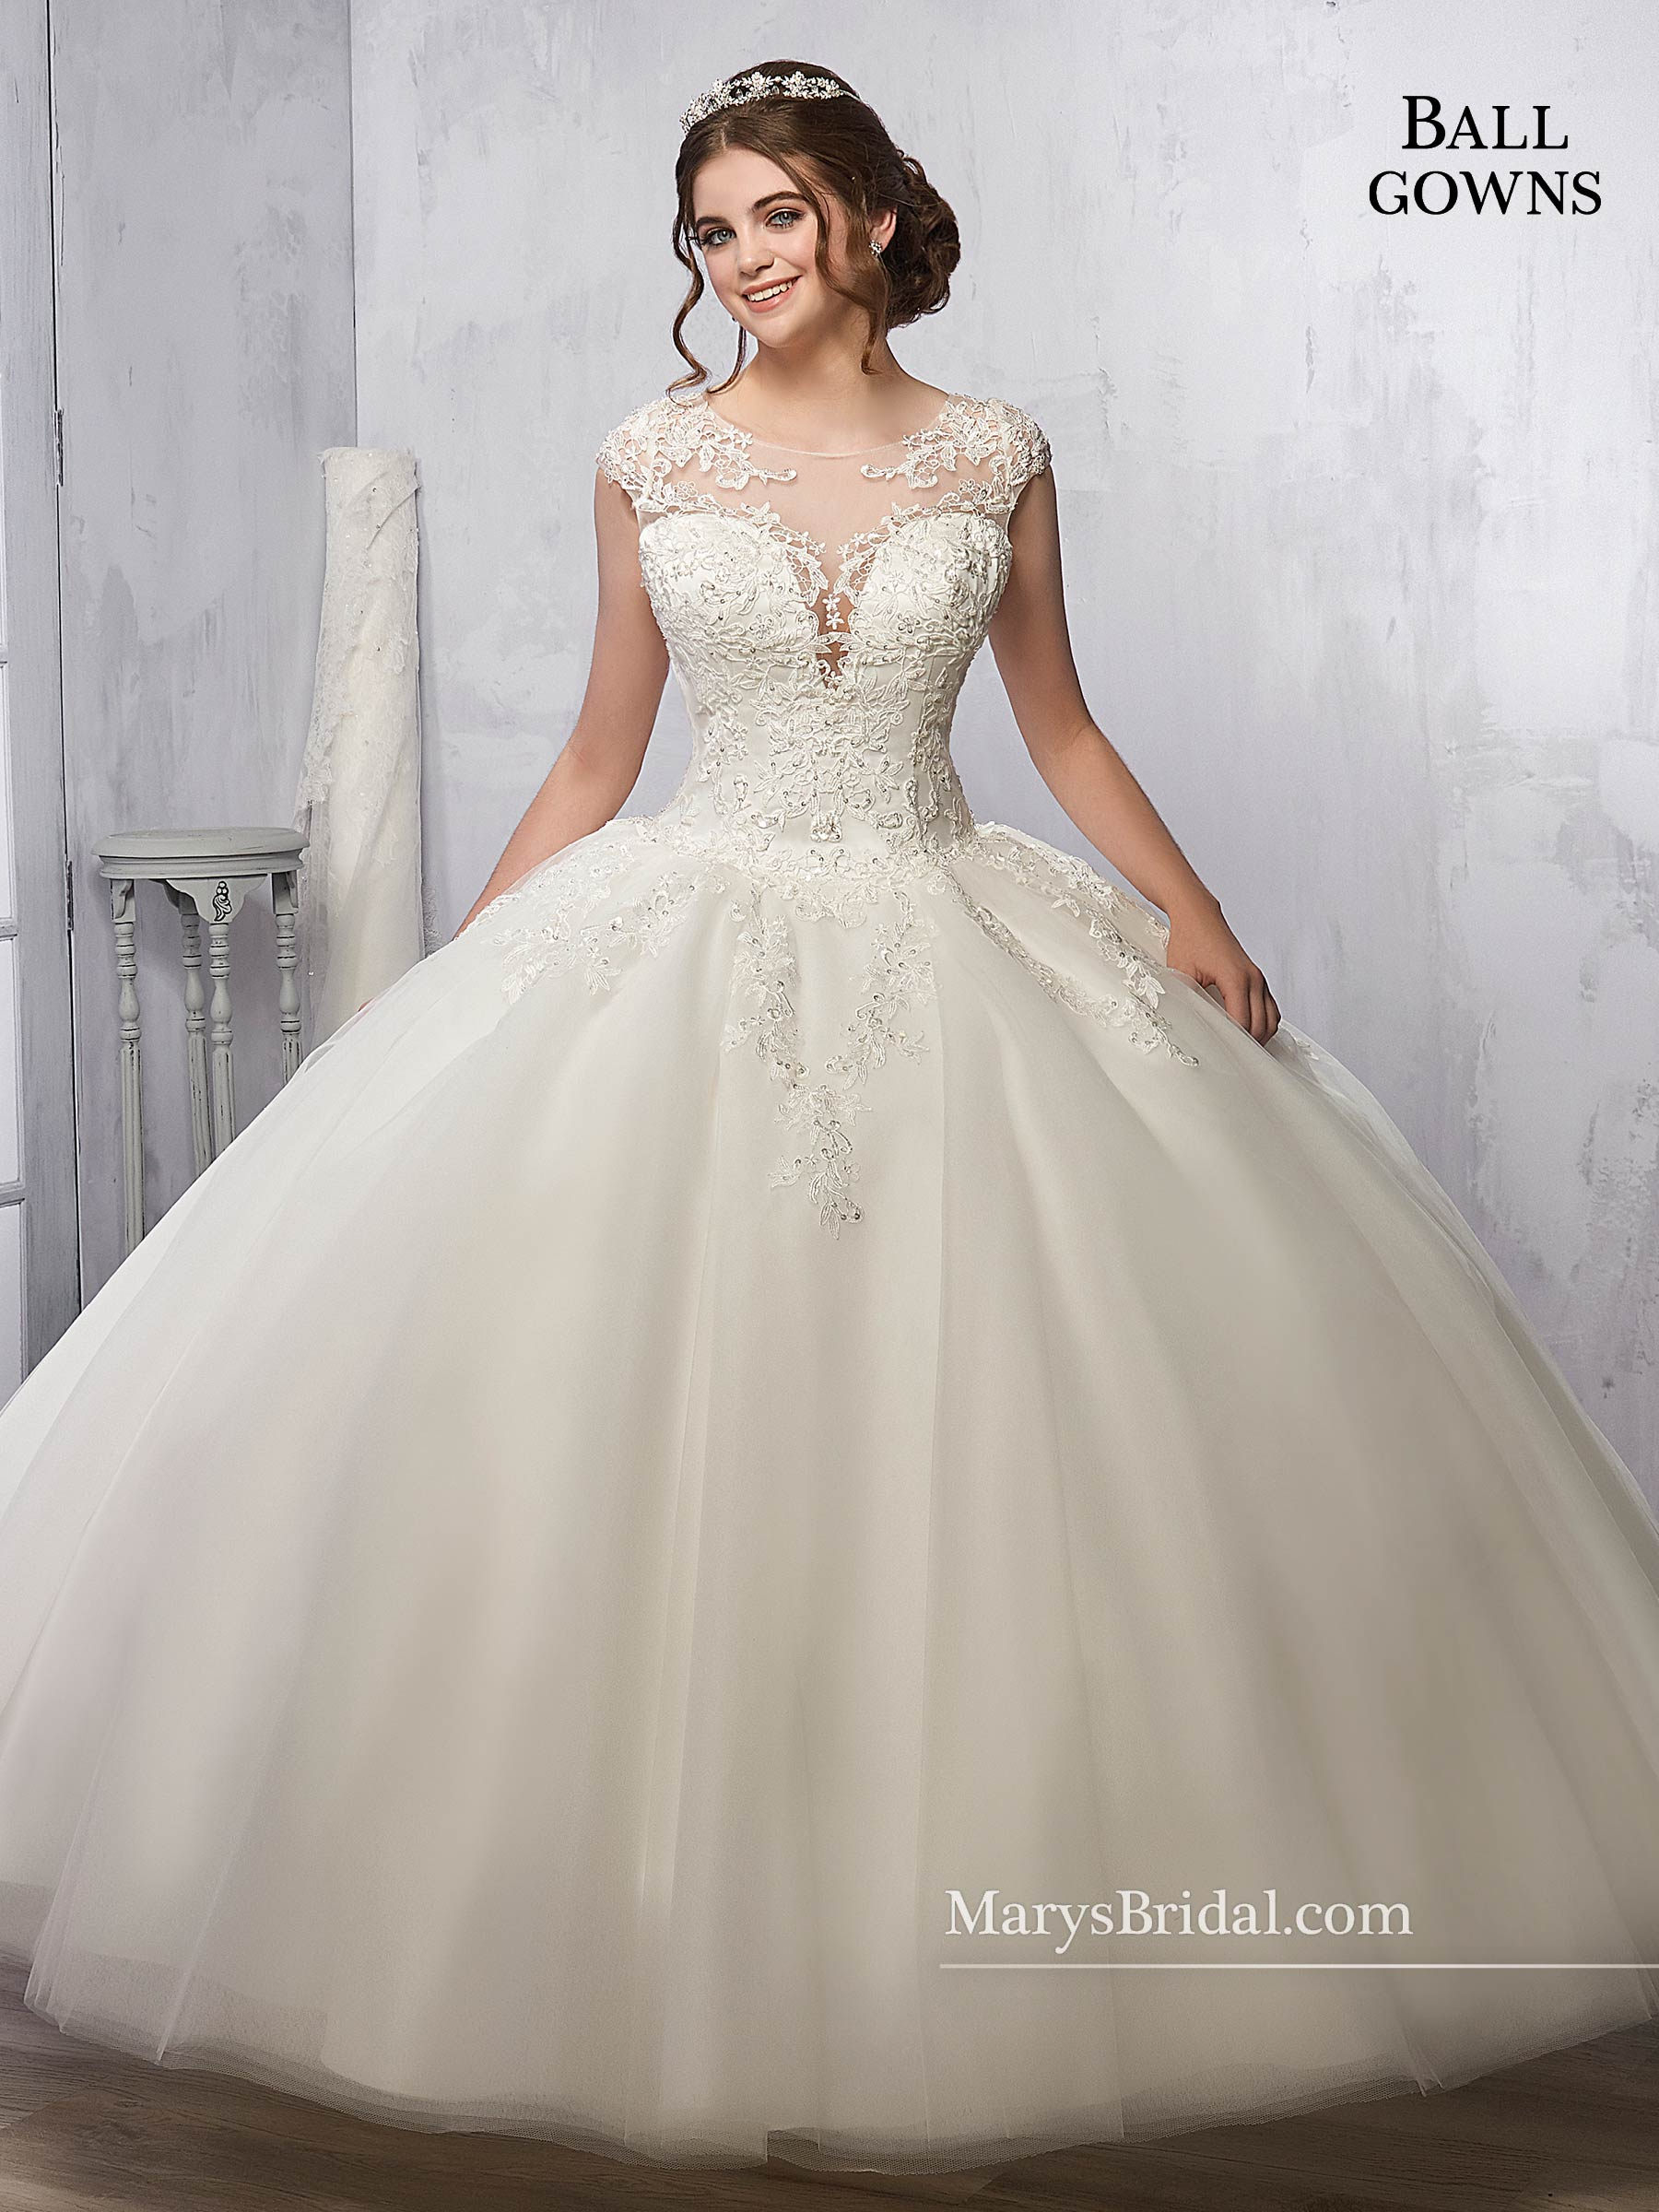 Bridal Ball Gowns | Style - 2B841 in Ivory, White Color